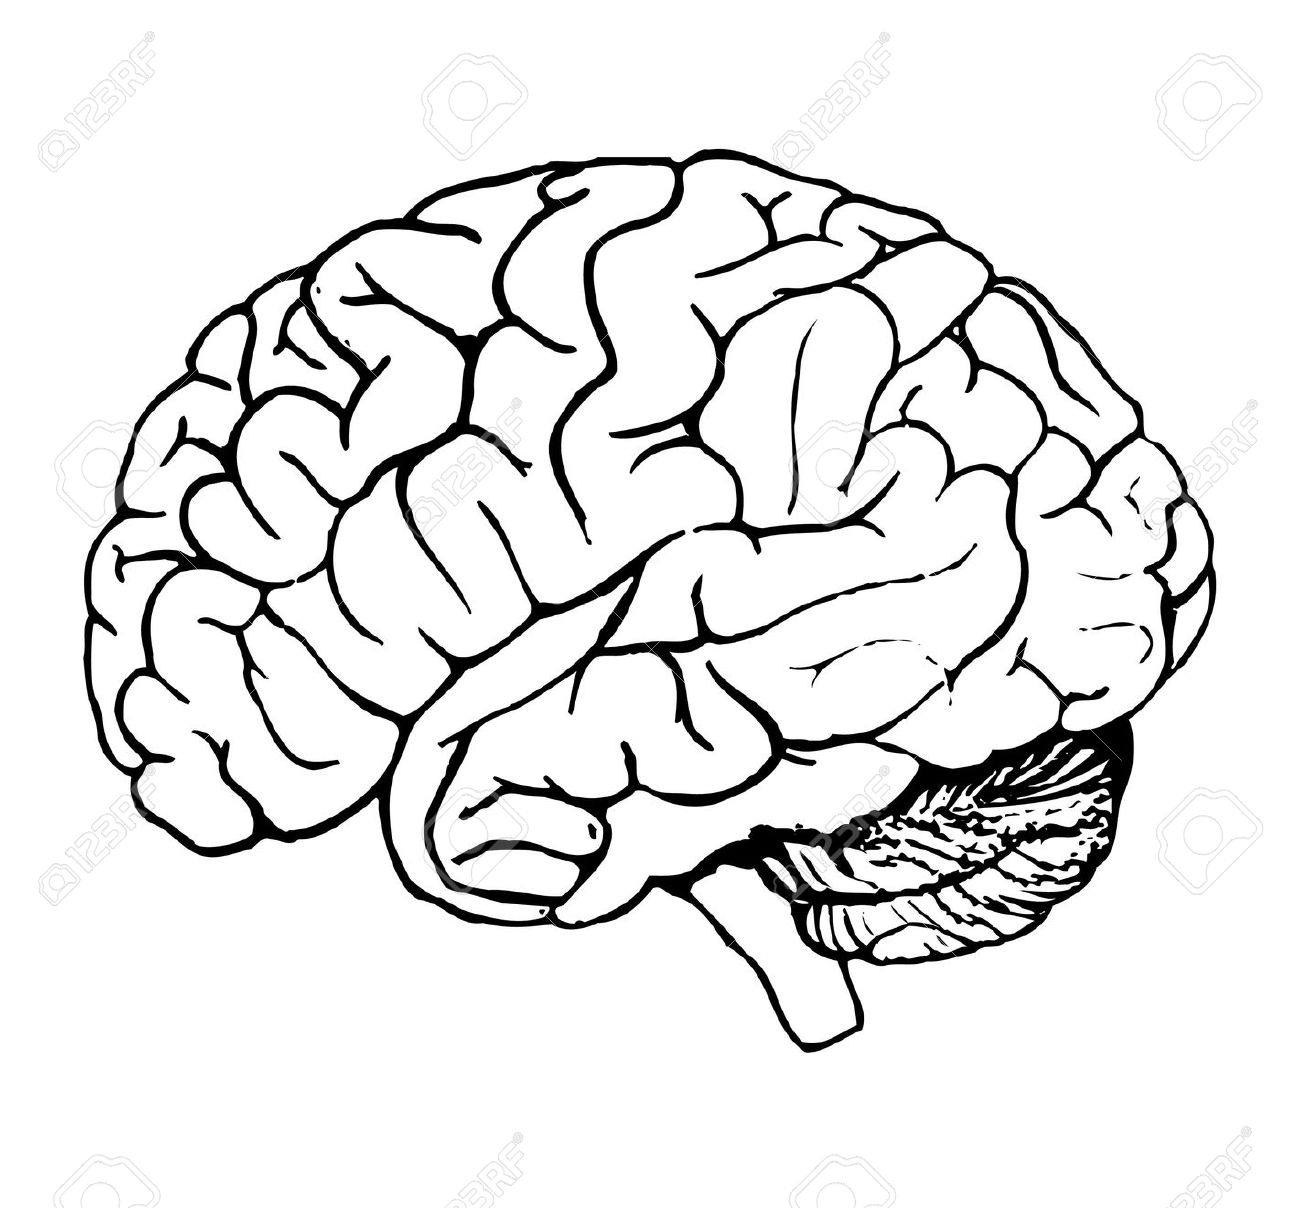 Drawn brains ancient Com pdclipart 2 Free art